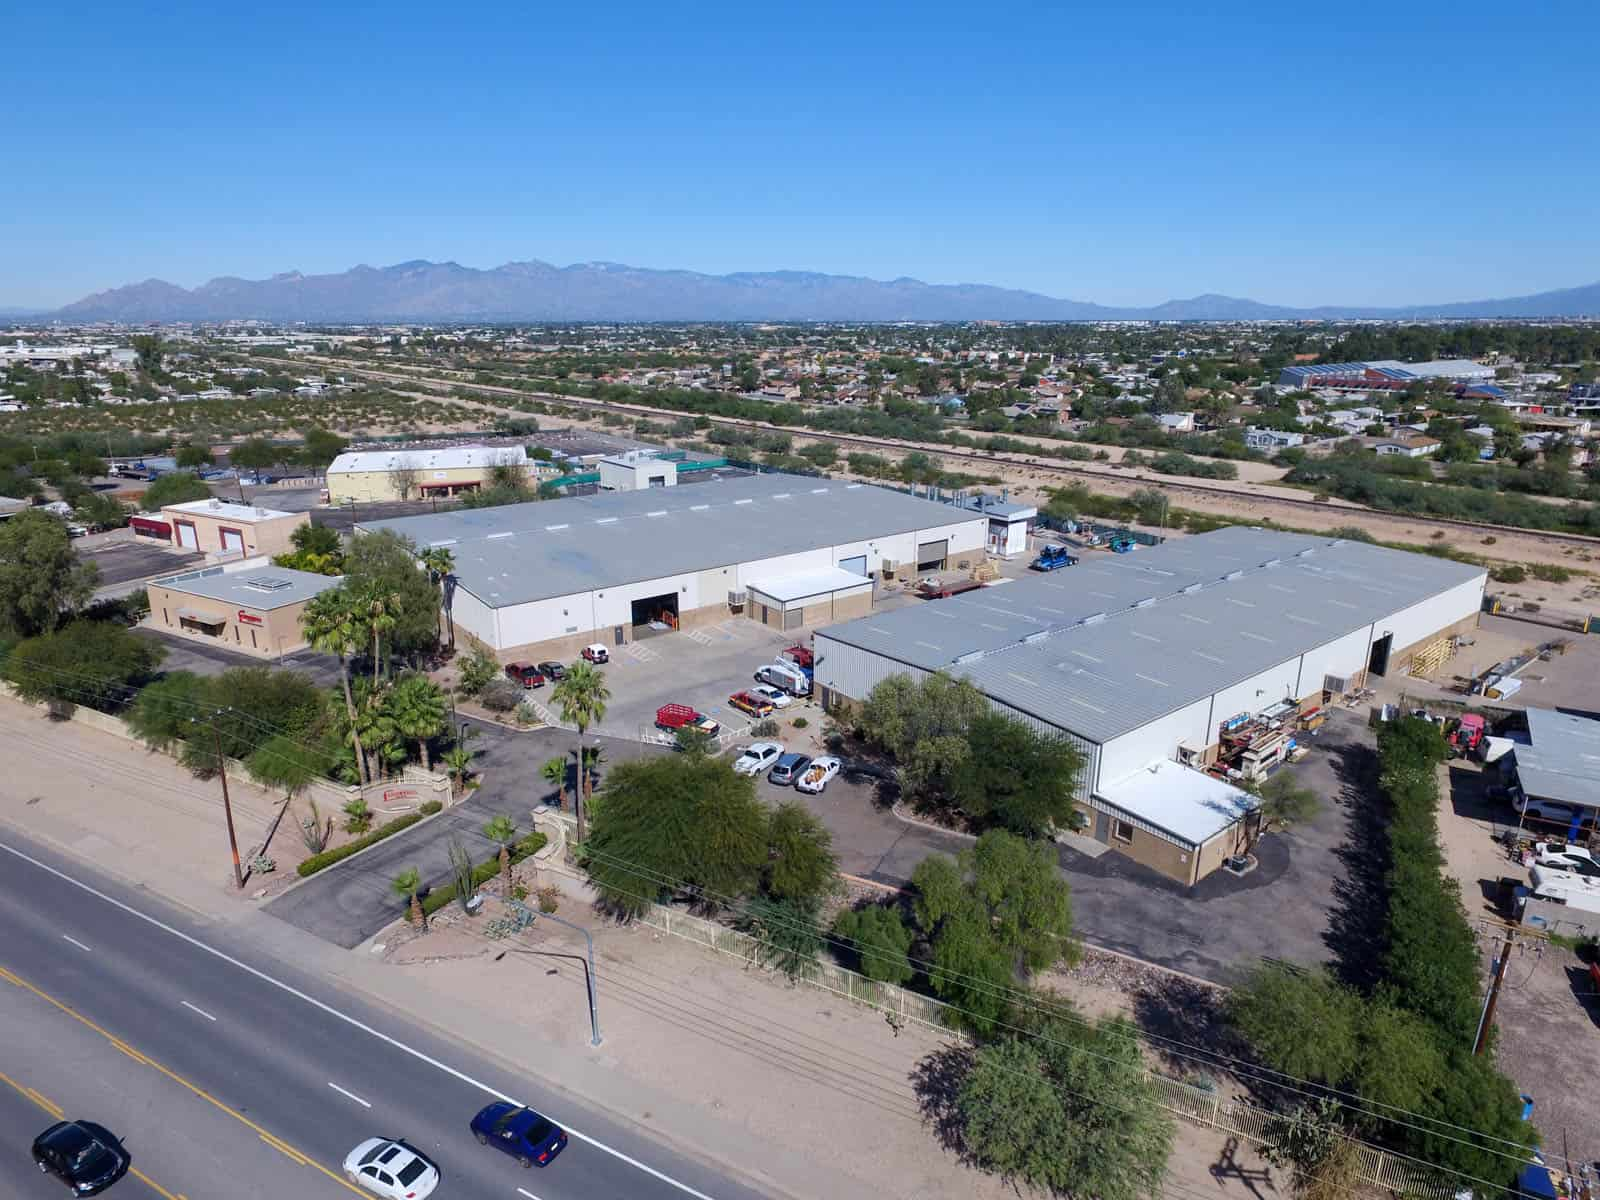 aerial photo of commercial property in Tucson, AZ